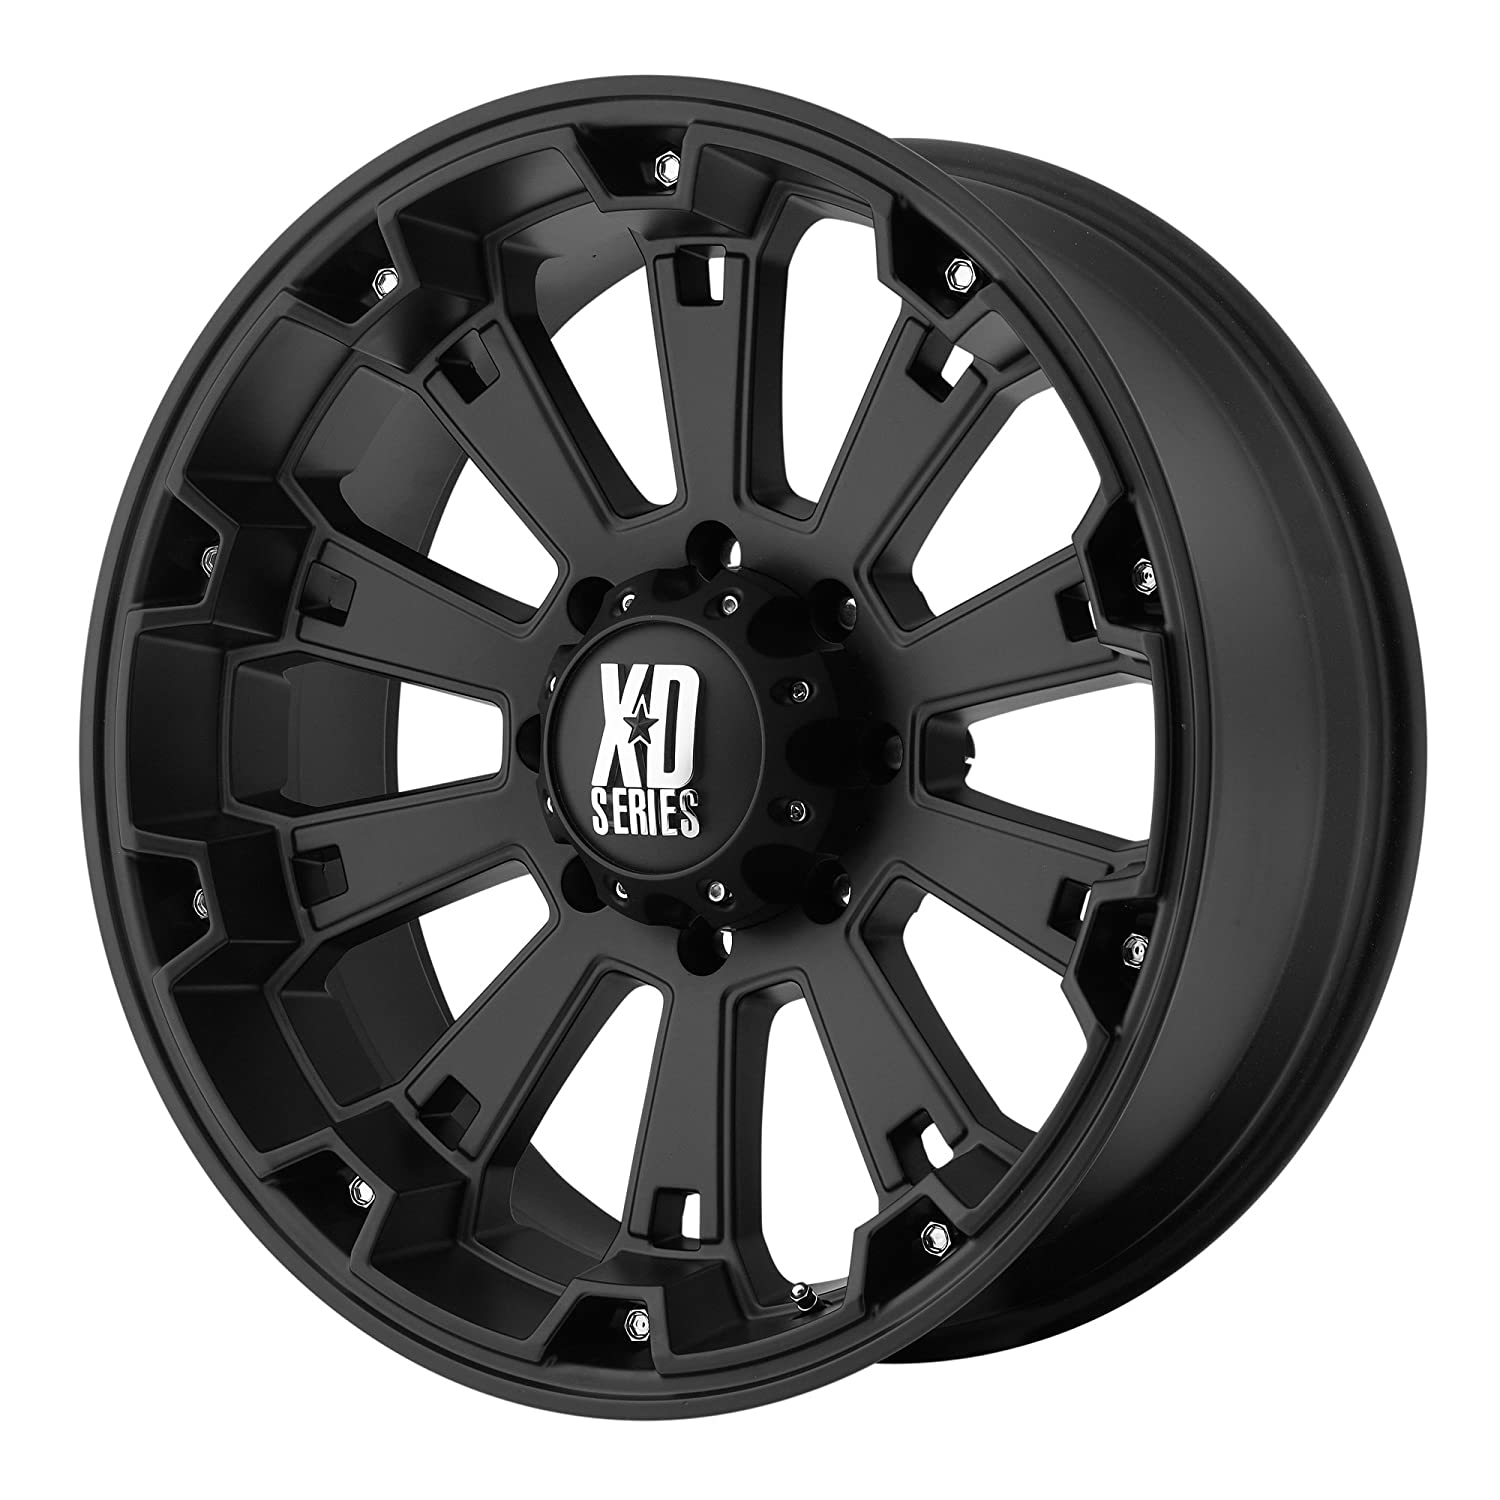 20x9//8x170mm, 0mm offset XD Series by KMC Wheels XD800 Misfit Matte Black Wheel